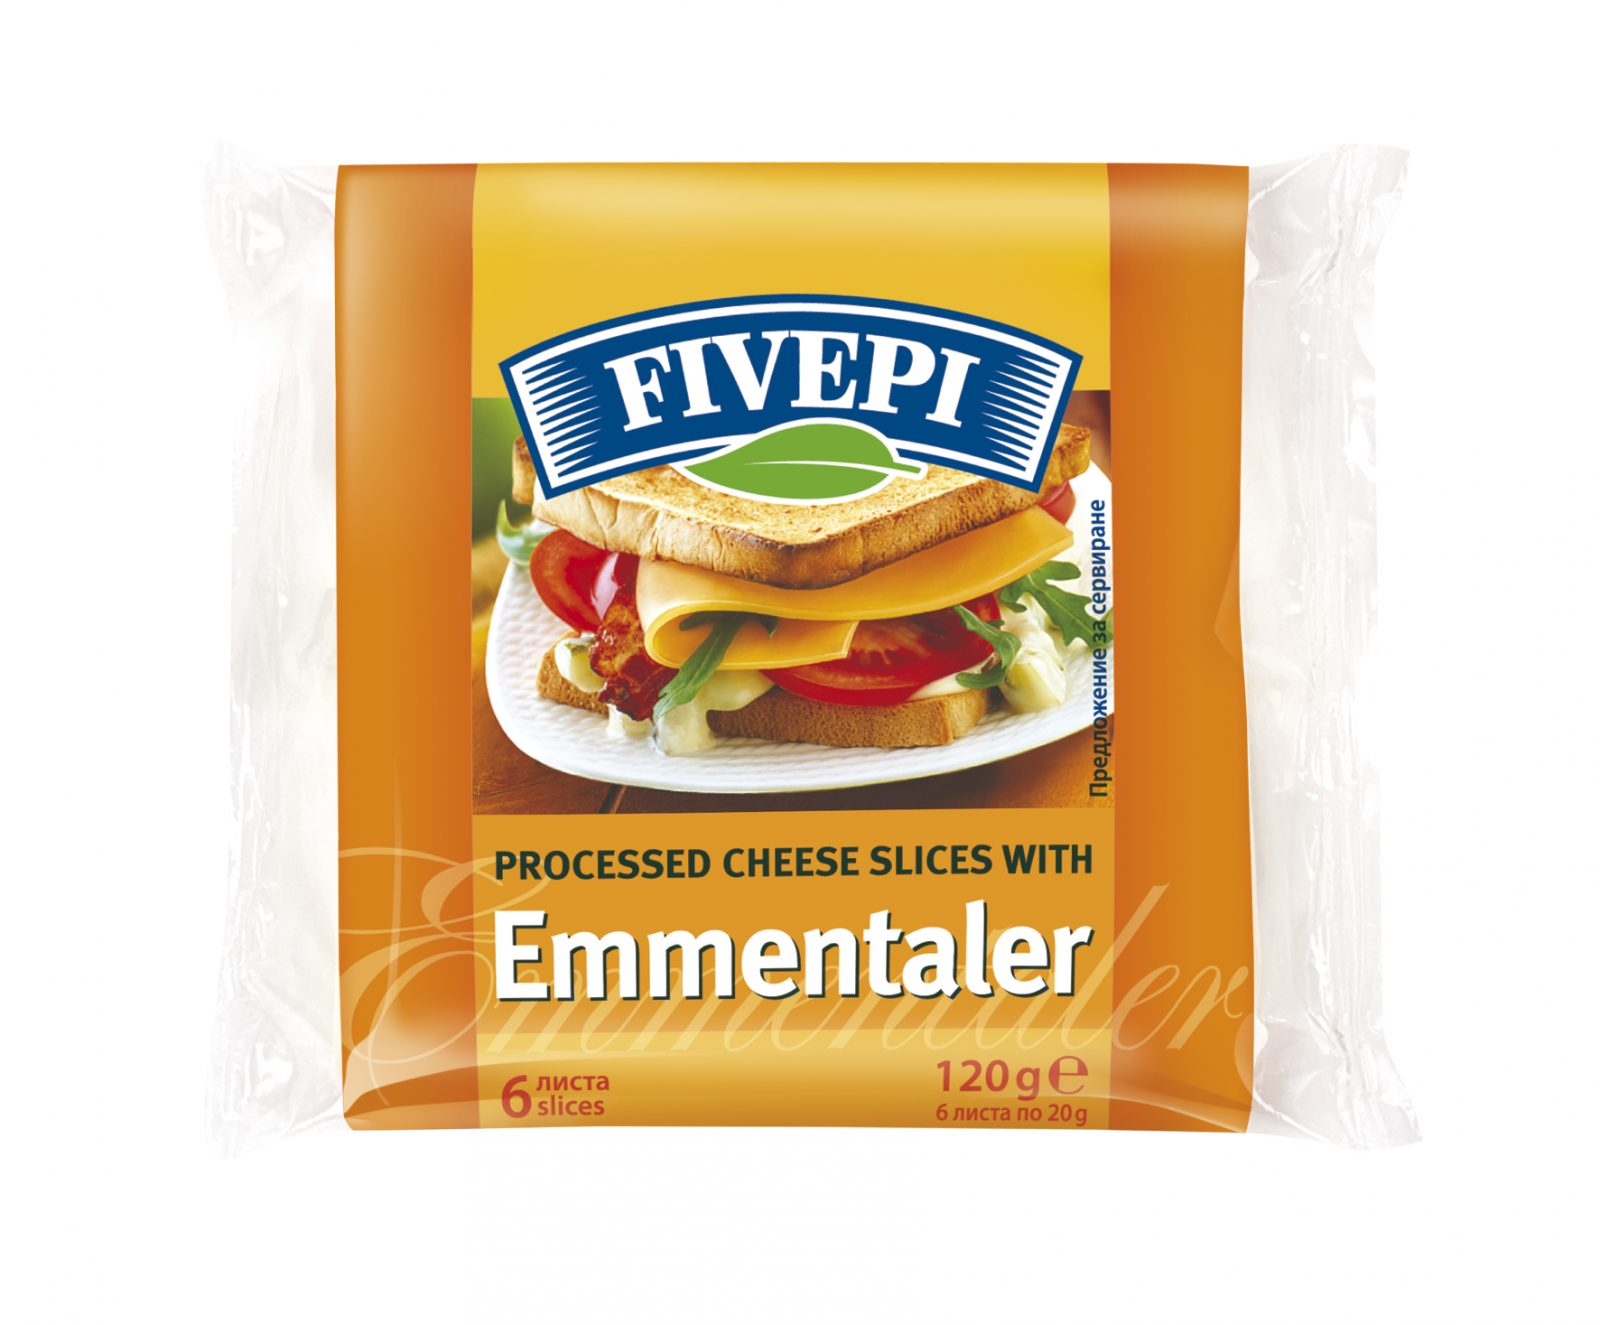 Fivepi processed cheese with Emmental